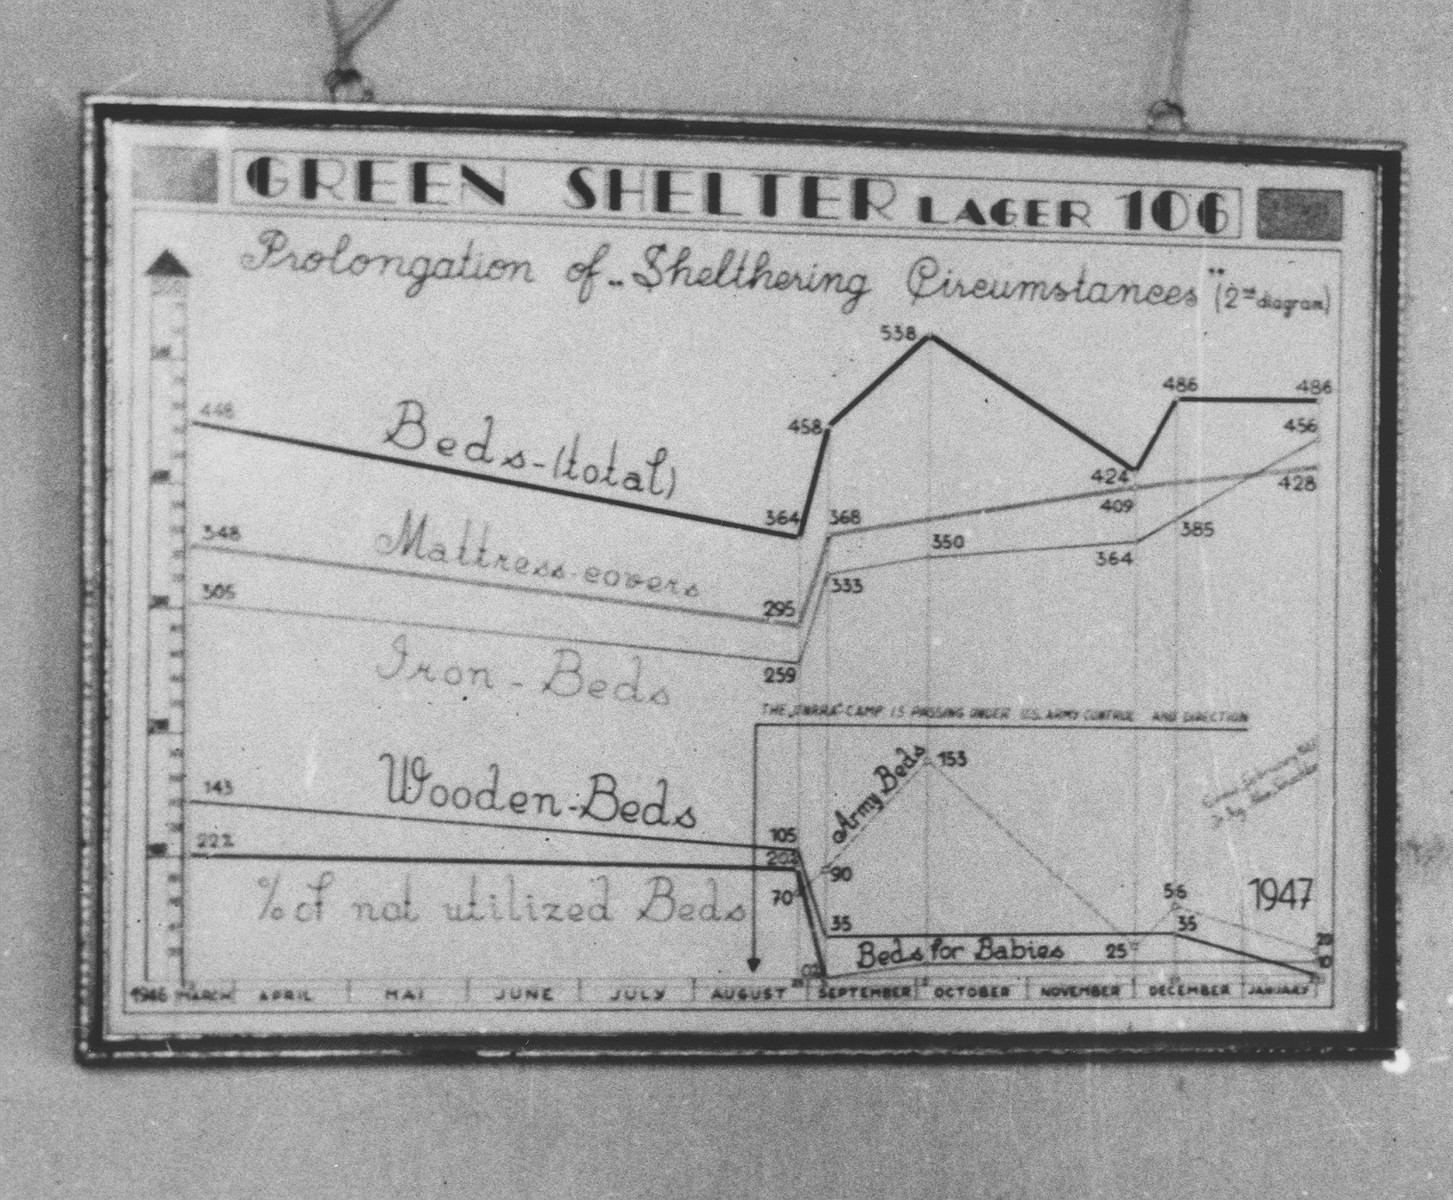 A graph charting the supply of beds in the Enns displaced persons camp in the period from 1946 to 1947.